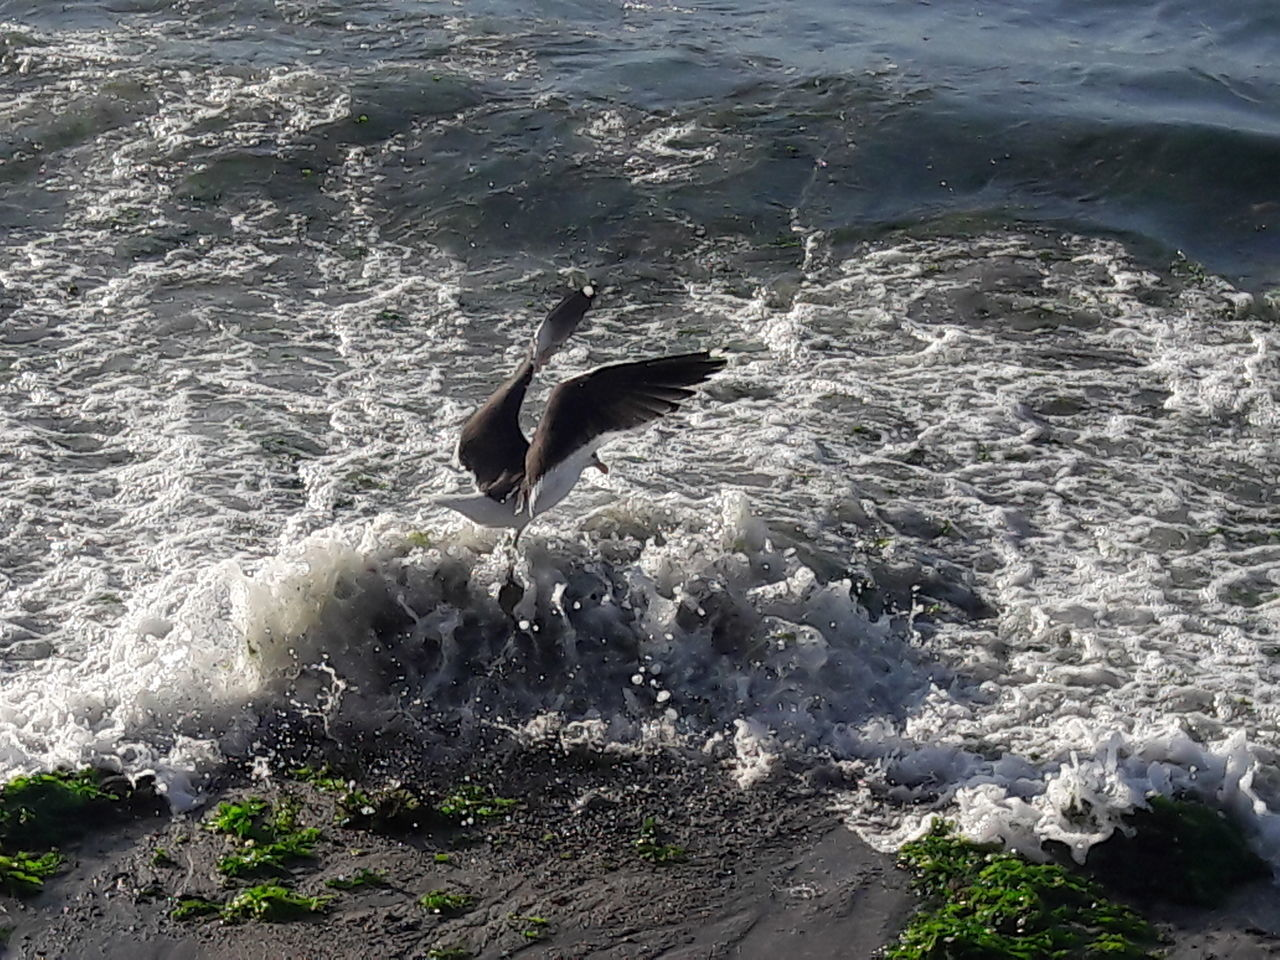 water, animal themes, animals in the wild, one animal, high angle view, motion, day, sea, nature, no people, animal wildlife, outdoors, waterfront, bird, mammal, spread wings, swimming, beauty in nature